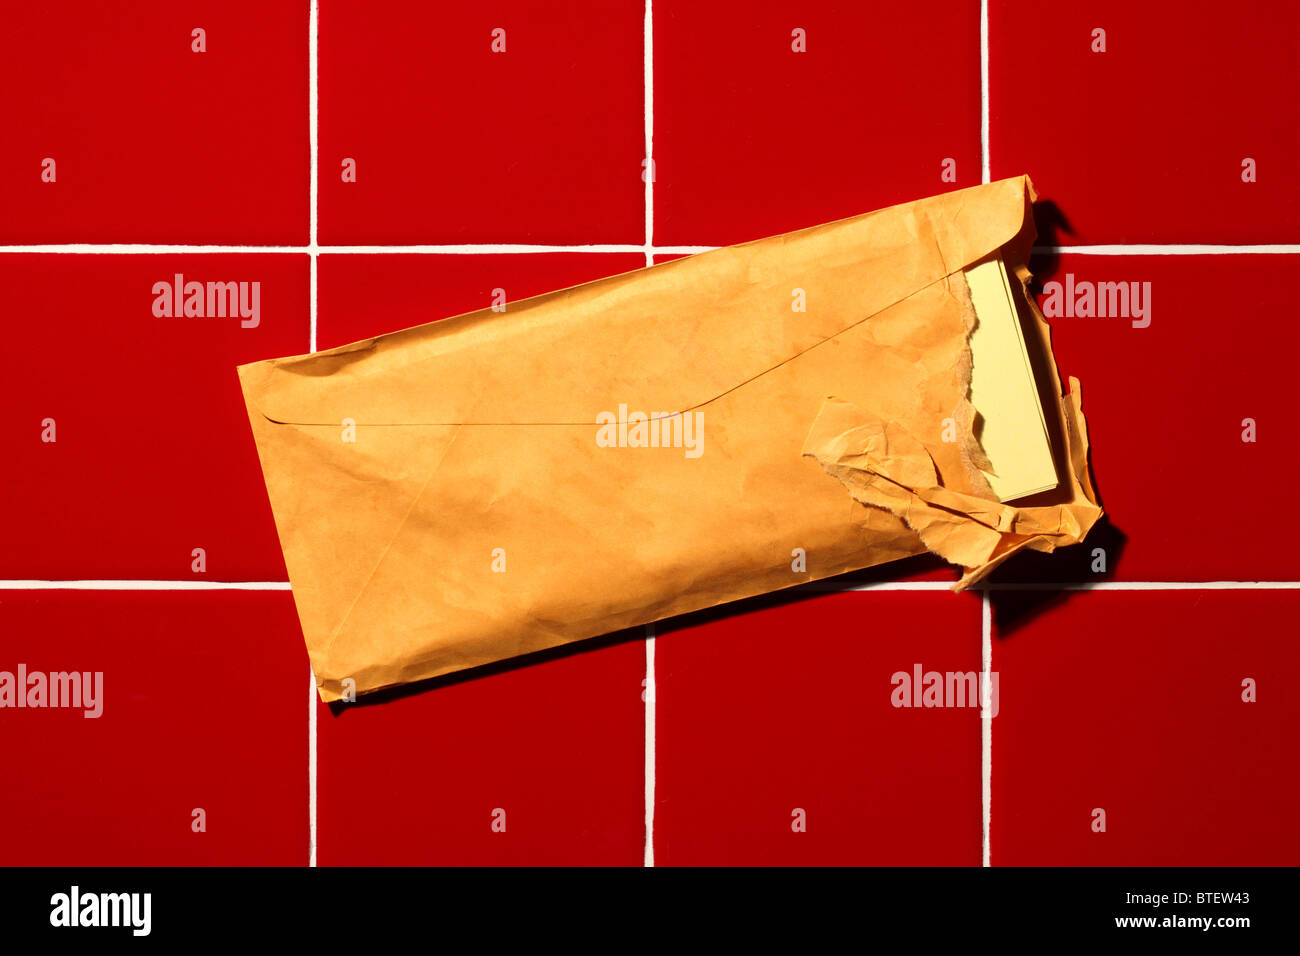 A used postal mailing envelope torn open. Red tiled background - Stock Image